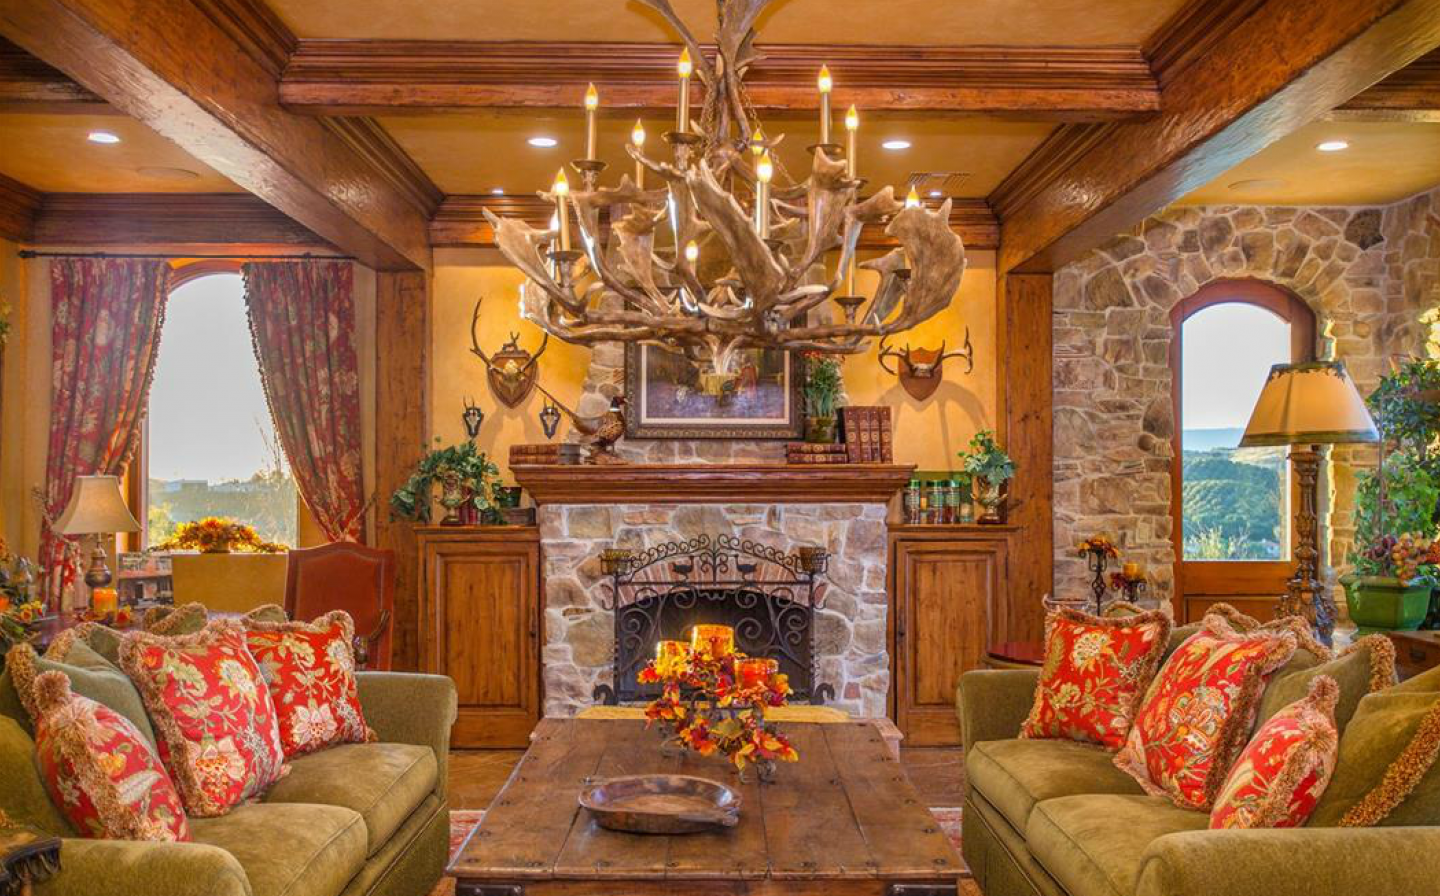 Fireplace and antler chandelier mix western and Tuscan flavors